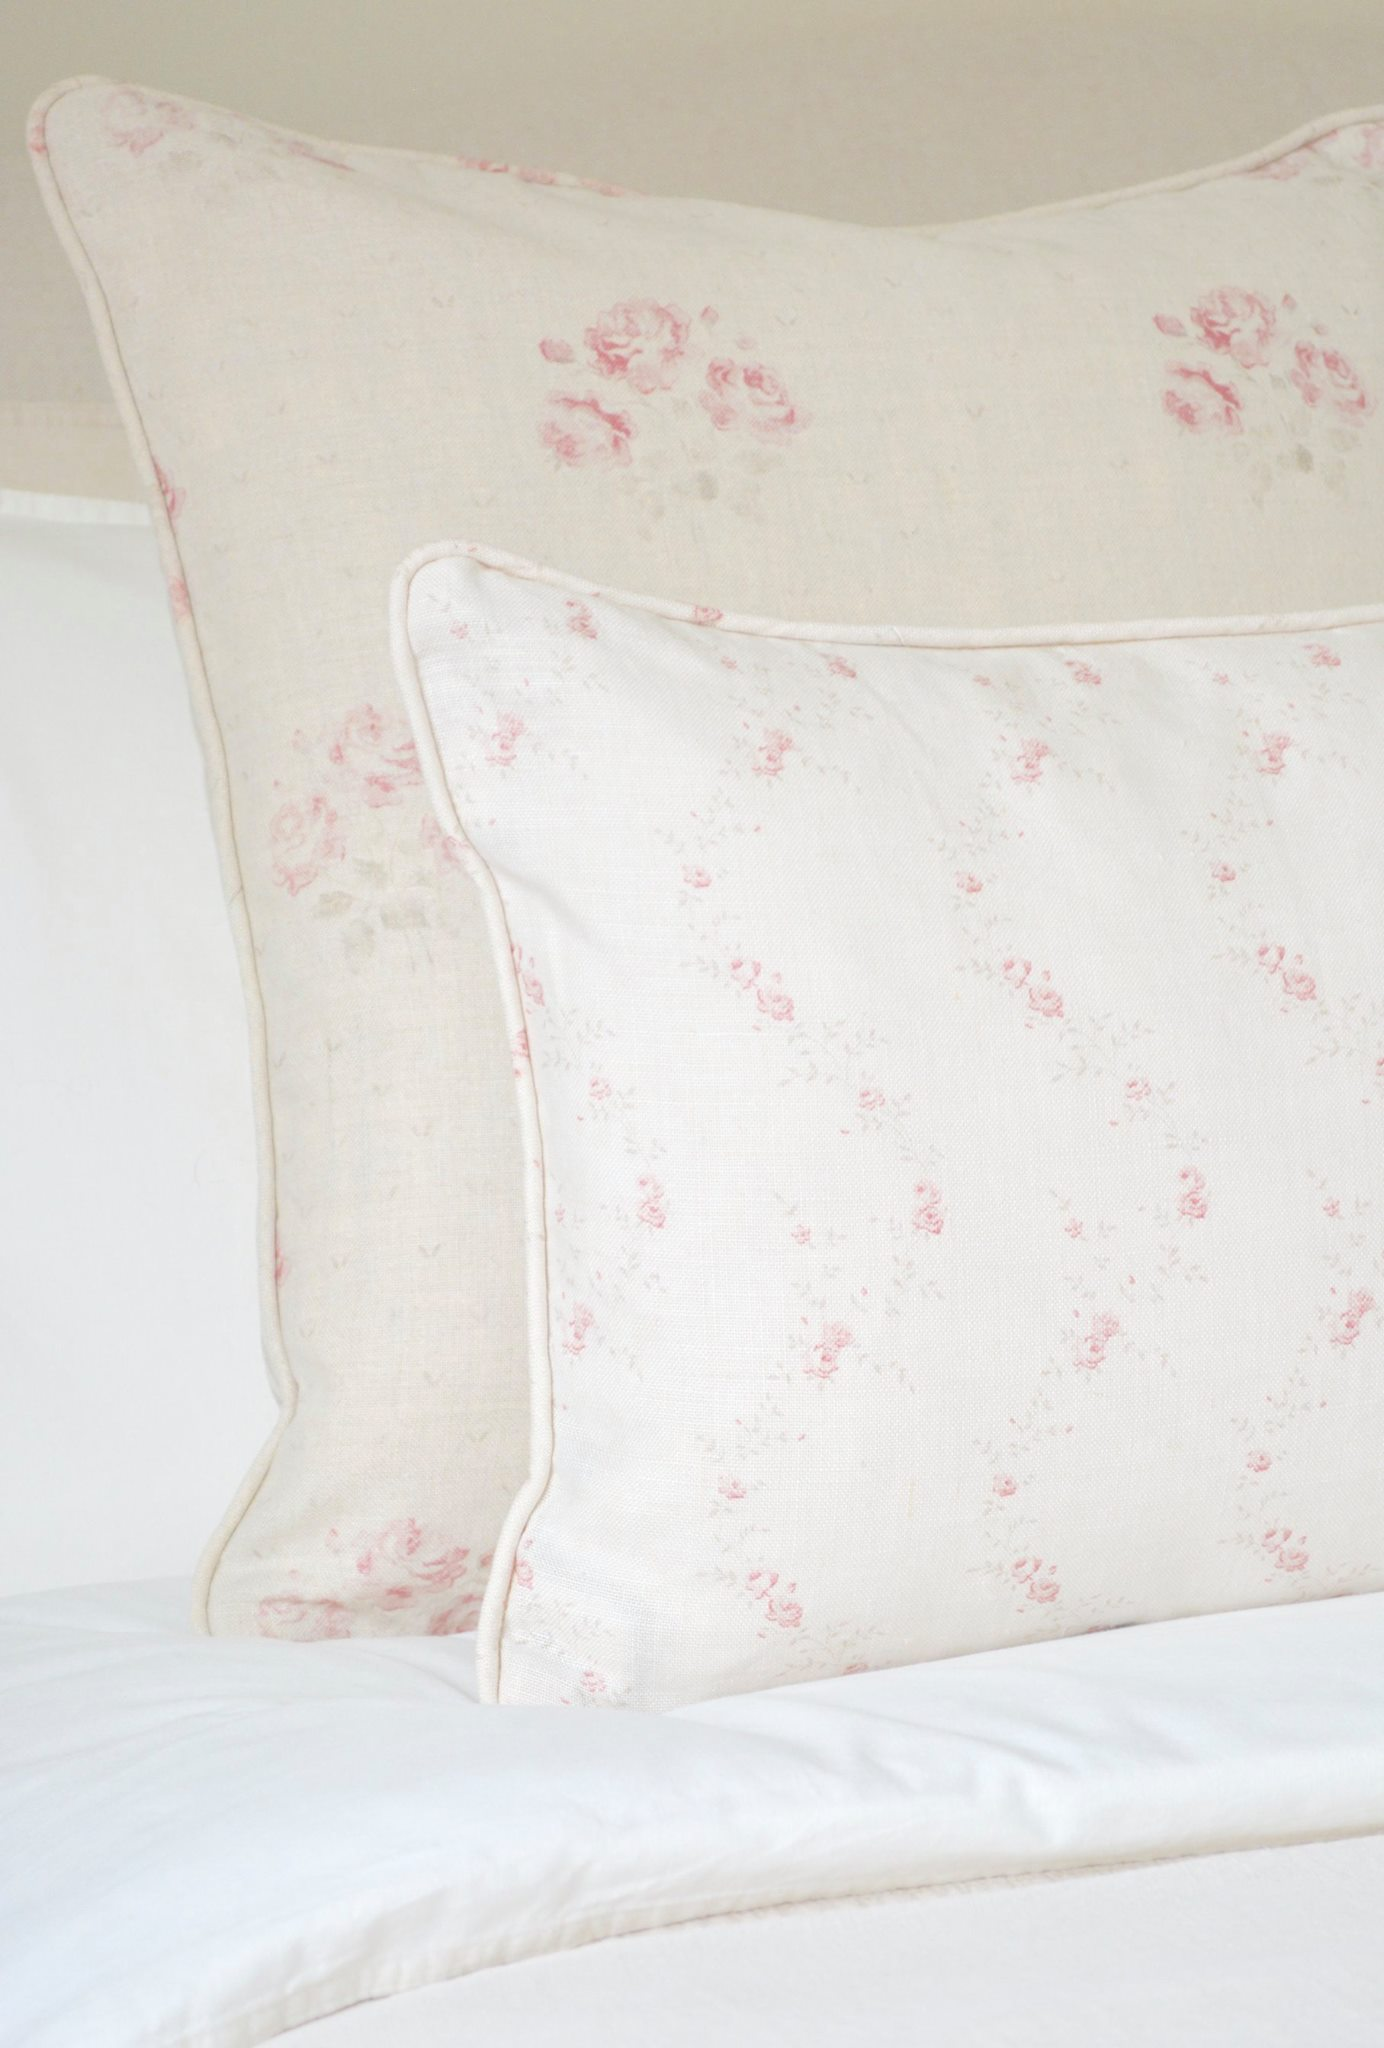 Cottage Bedroom with faded floral linens designed by www.hlinteriors.co.uk13.jpg